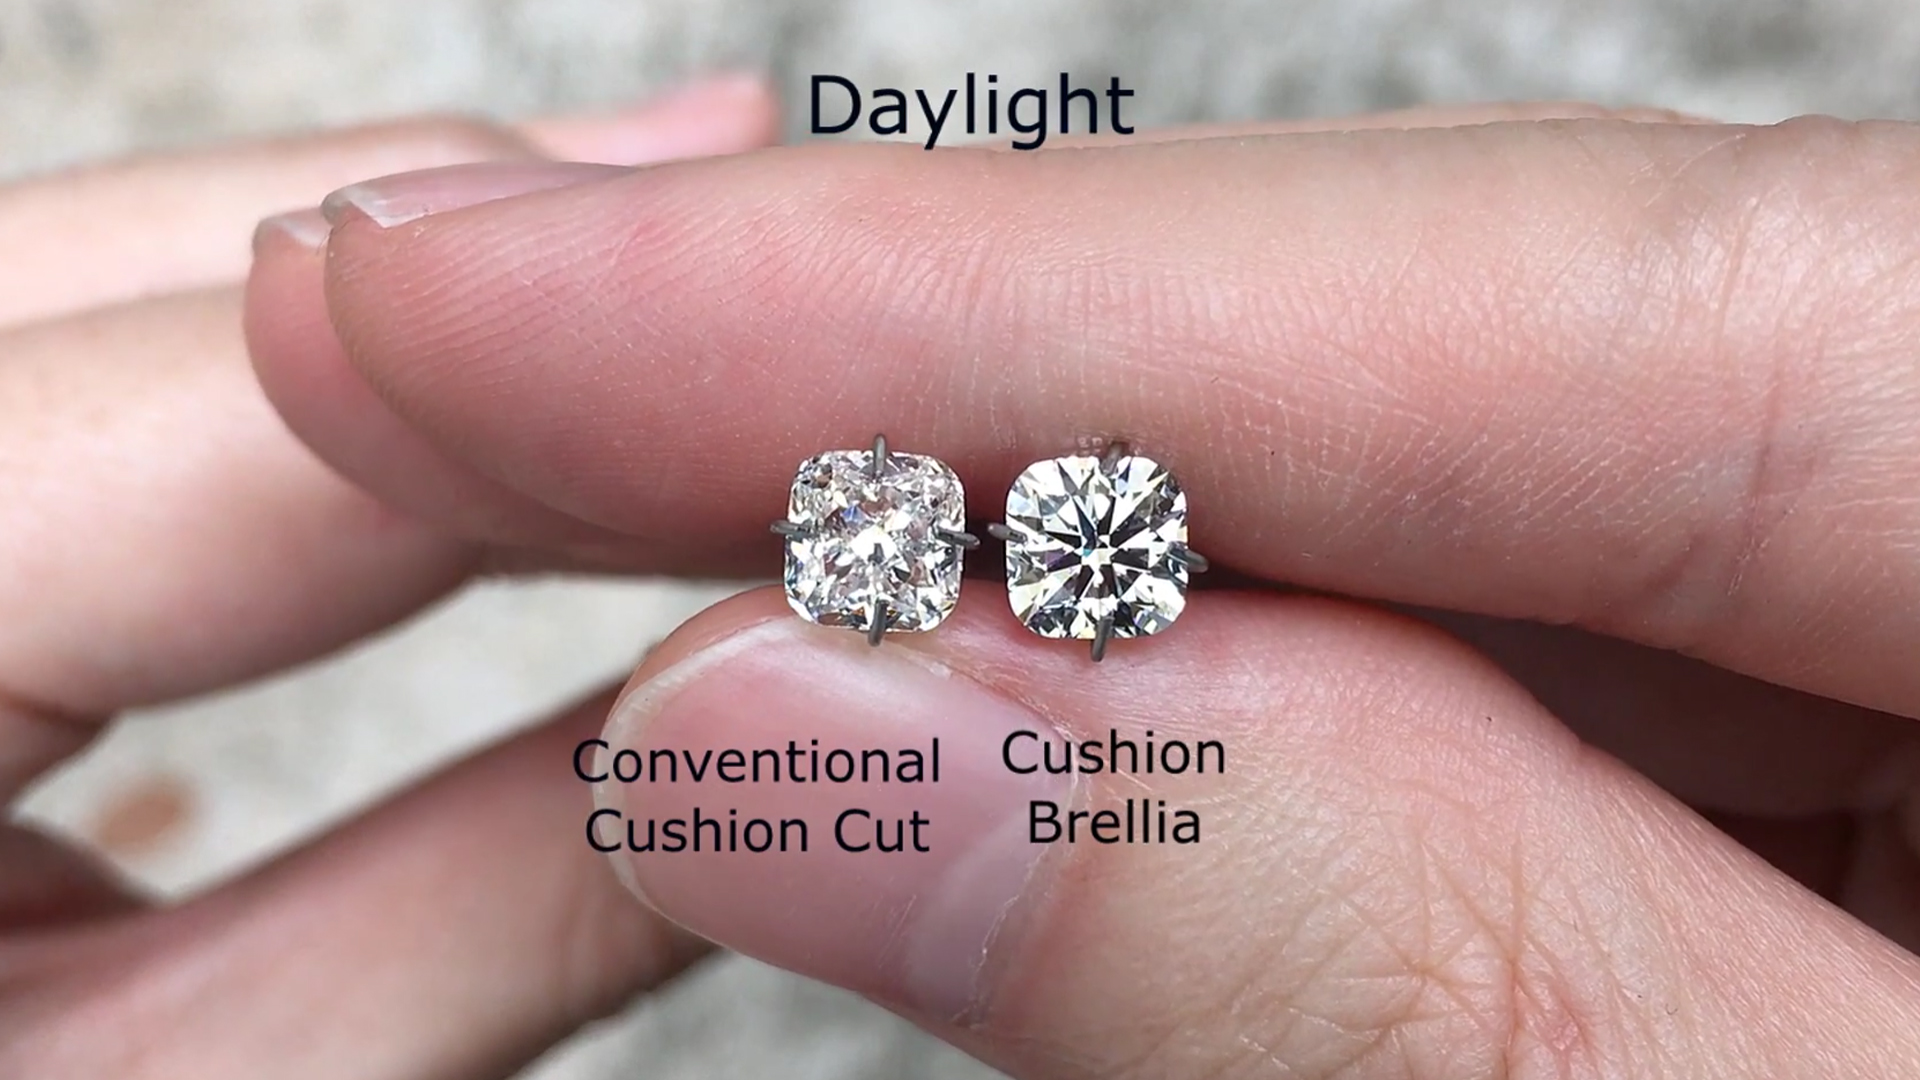 Why the Cushion Brellia Appears Whiter Compared to other Cushion Cut Diamonds